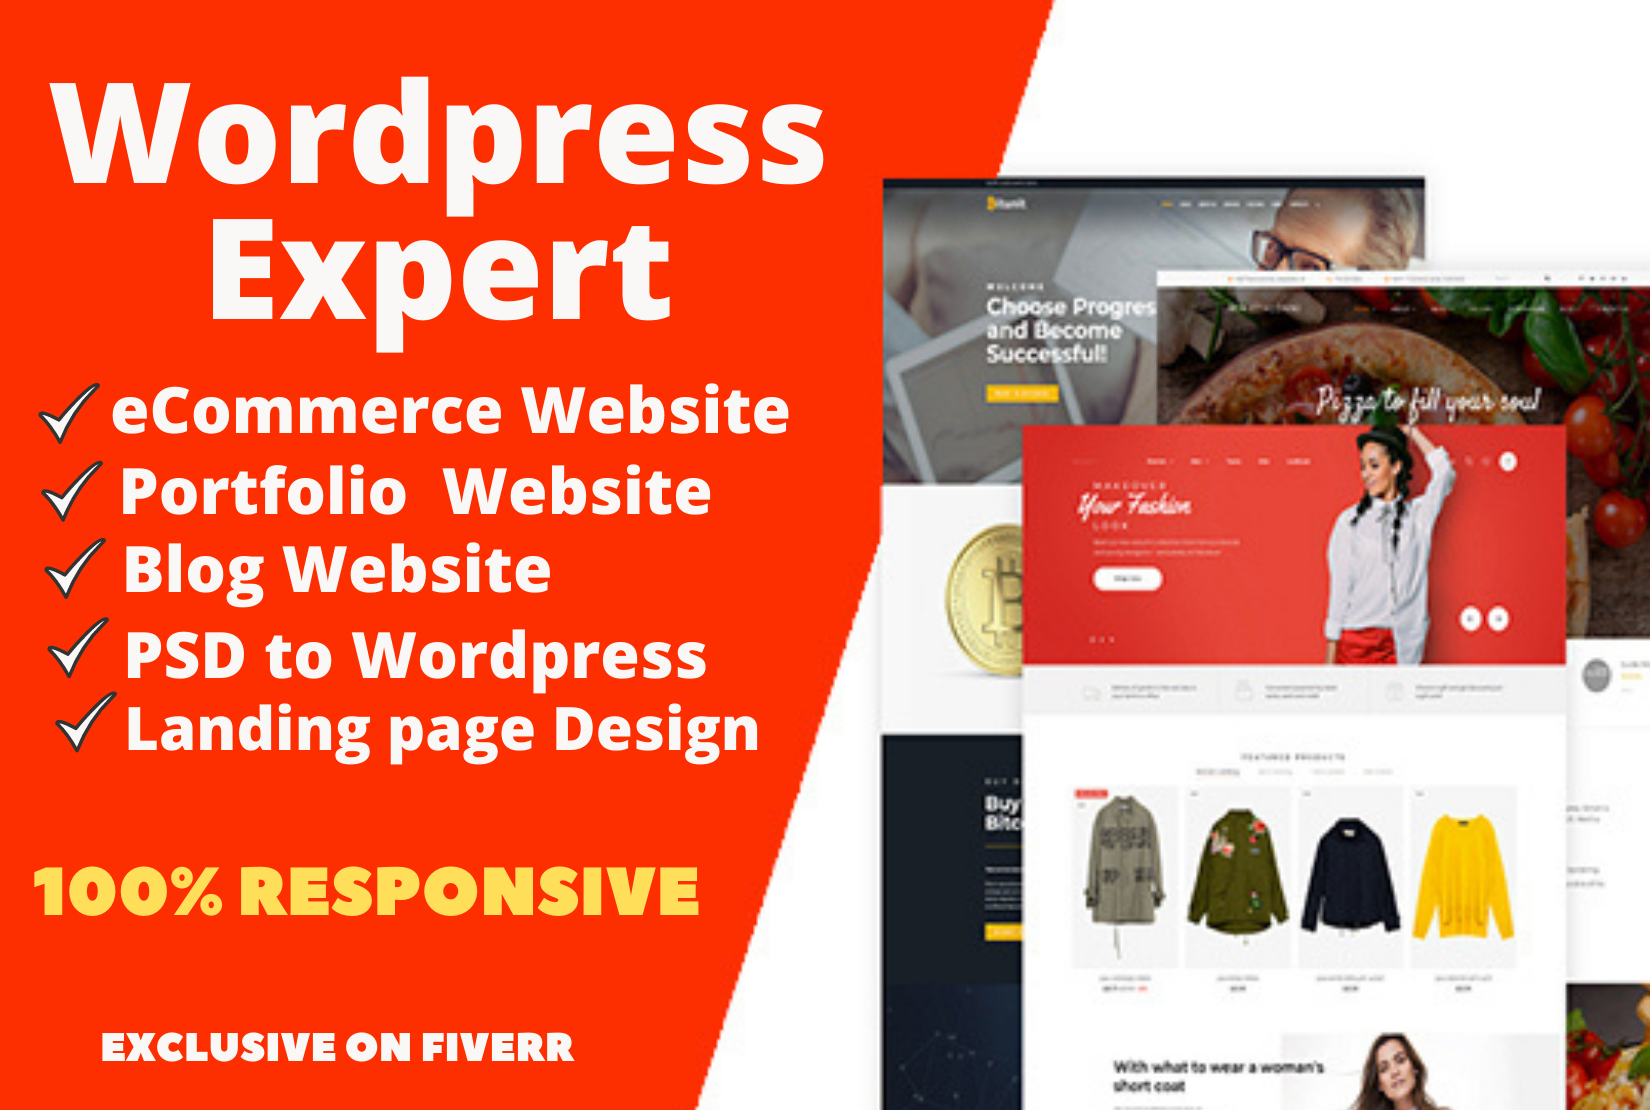 Create wordpress eCommerce,  portfolio,  blog or landing page website